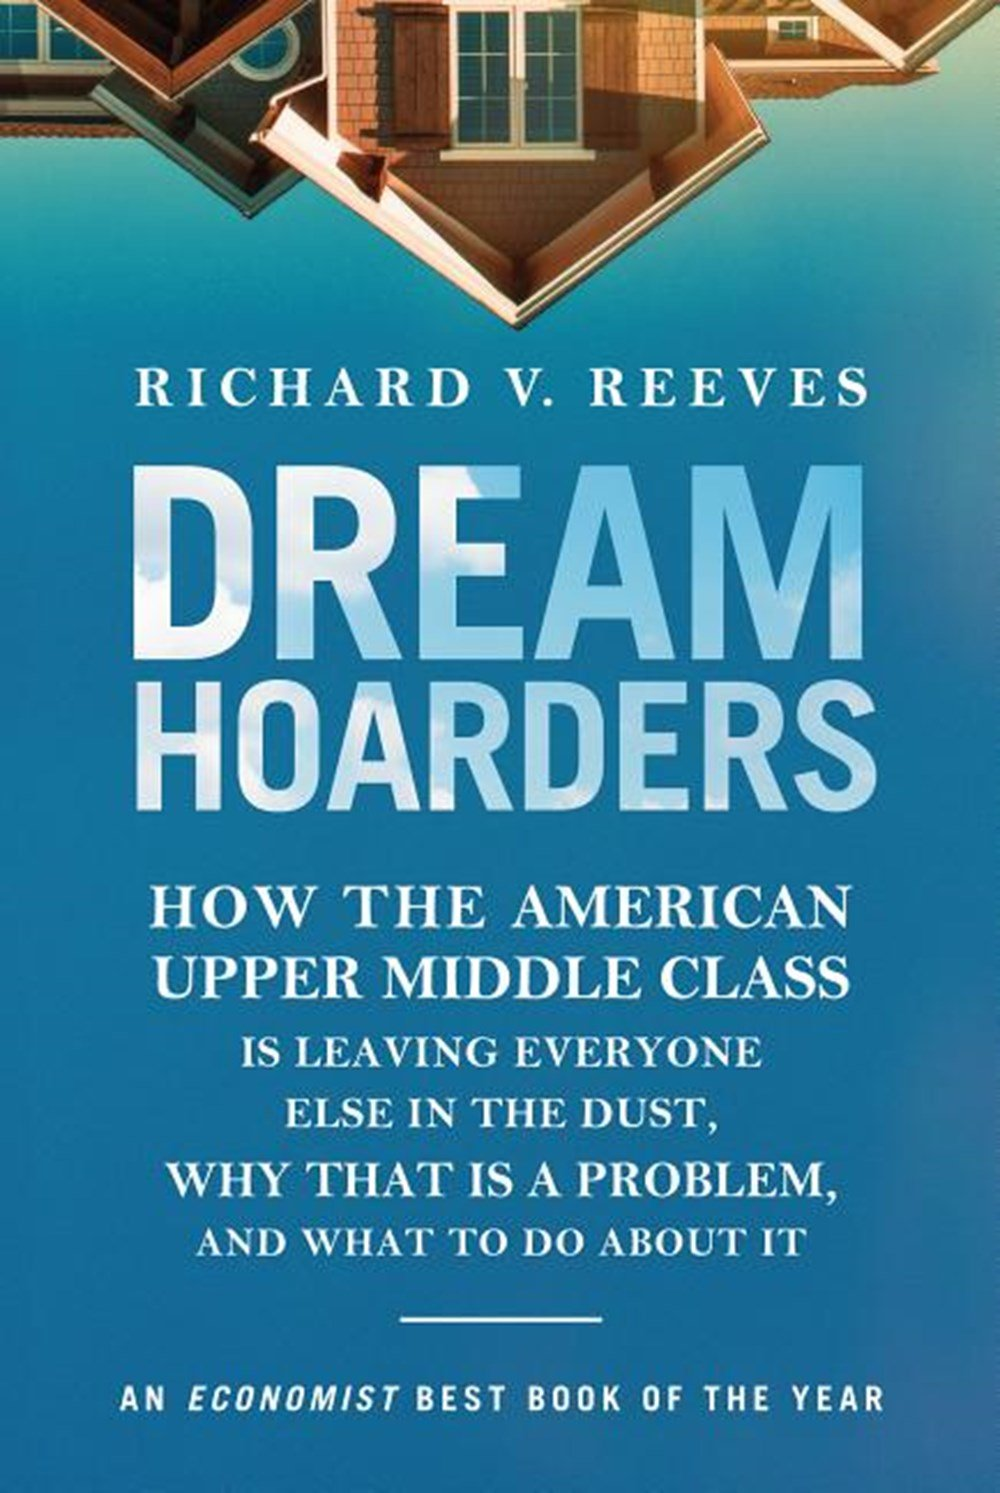 Dream Hoarders How the American Upper Middle Class Is Leaving Everyone Else in the Dust, Why That Is